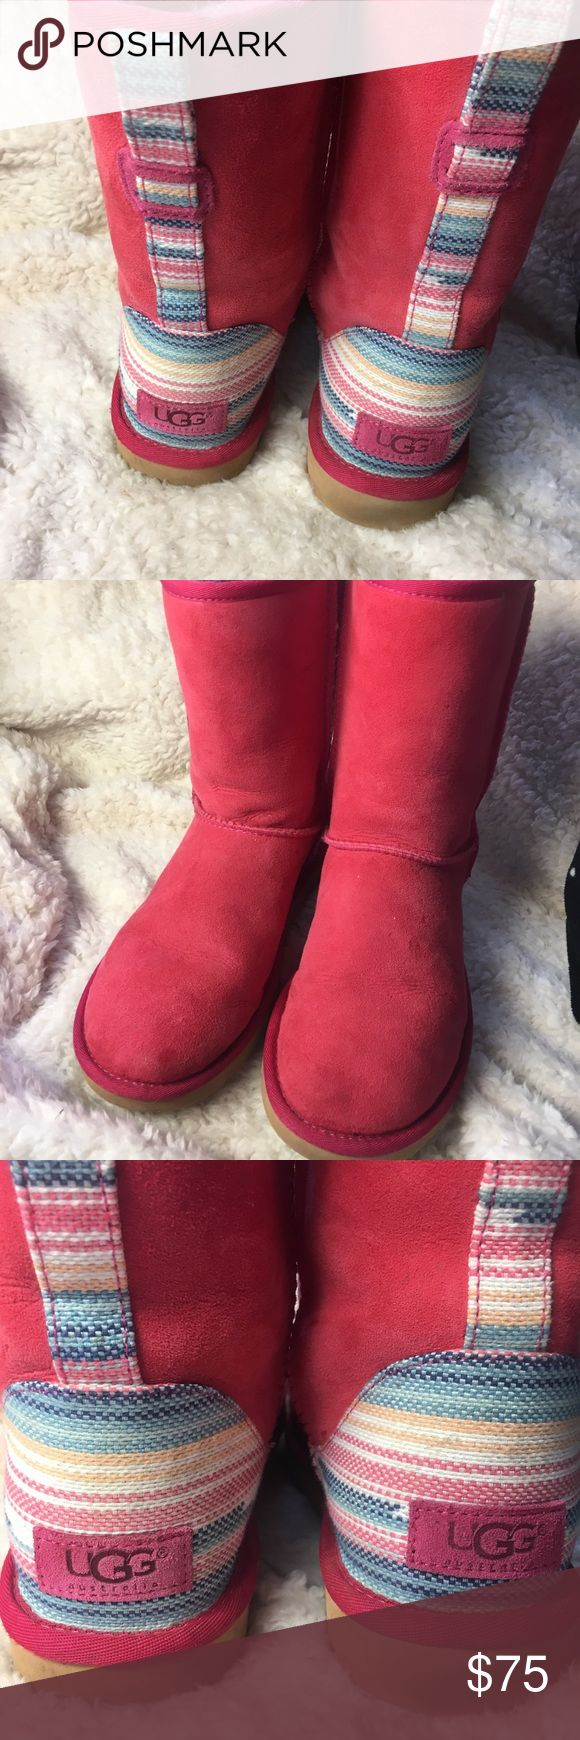 Pink Ugg's size 8 women's with stripe detail Cute gently worn size 8 women's Uggs with striped fabric on back of boots. UGG Shoes Winter & Rain Boots